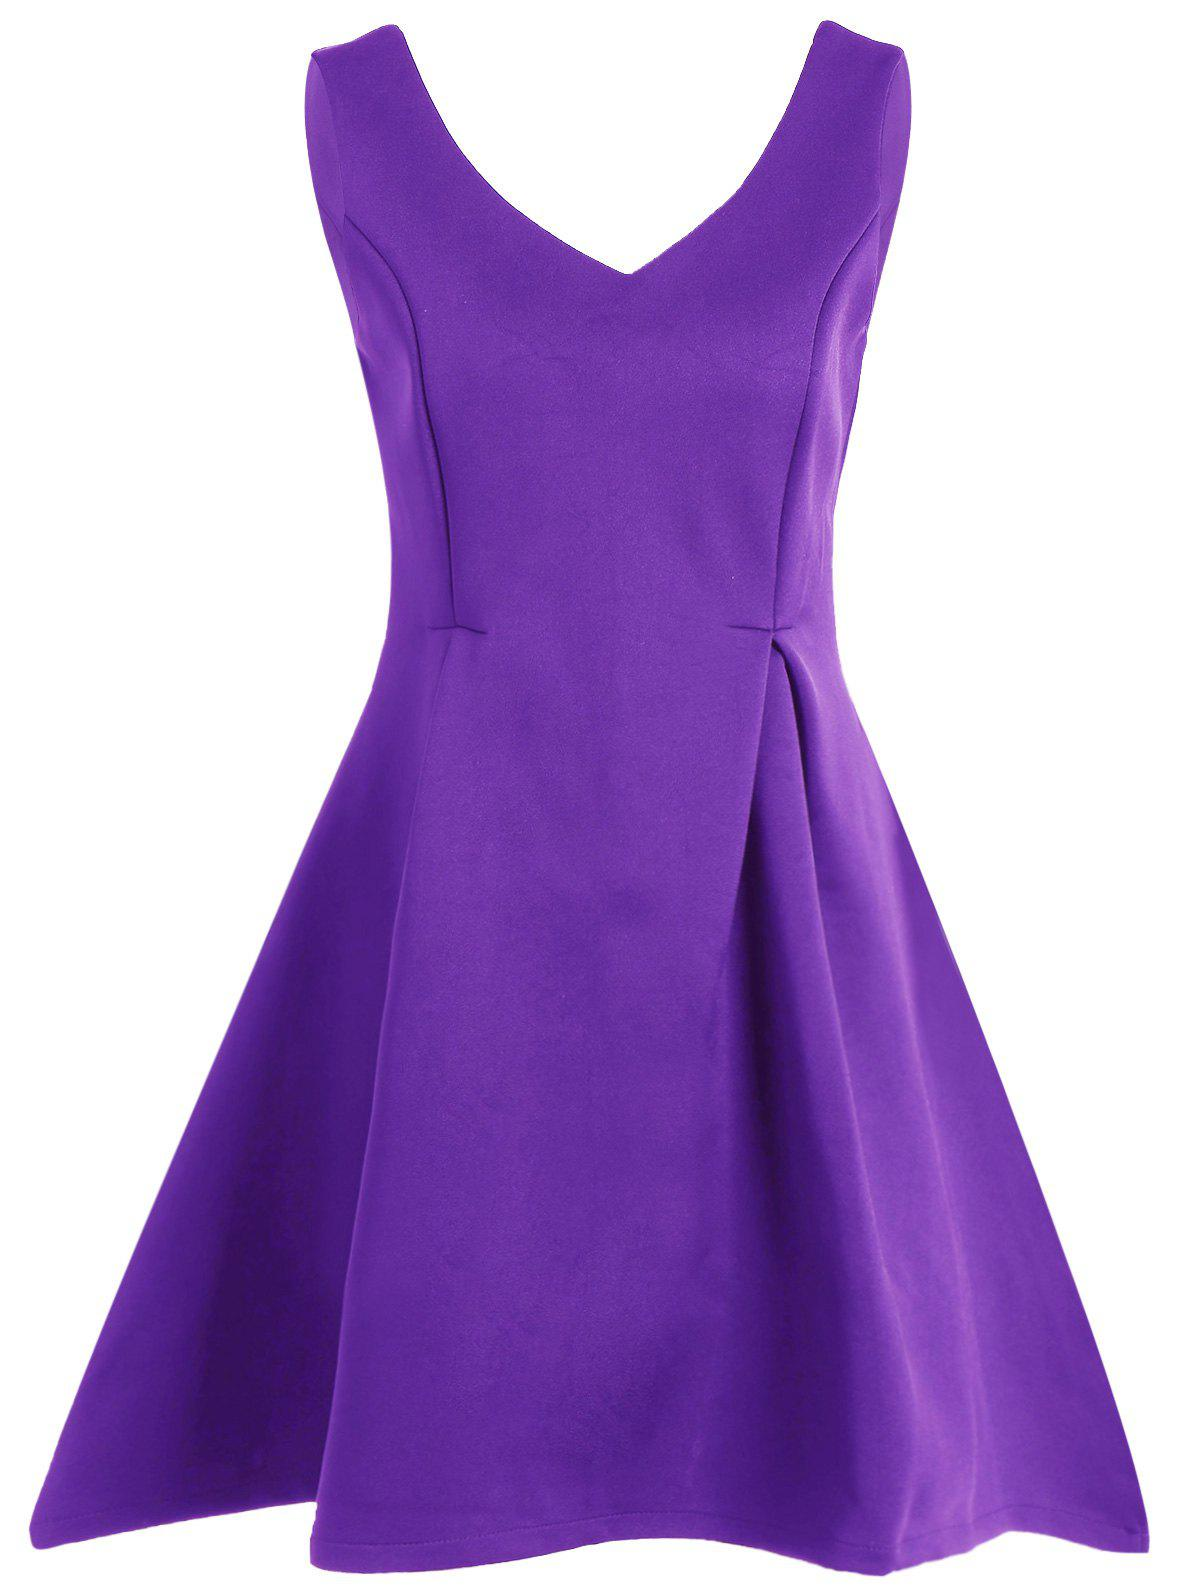 Sleeveless Fit and Flare Mini DressWomen<br><br><br>Size: M<br>Color: PURPLE